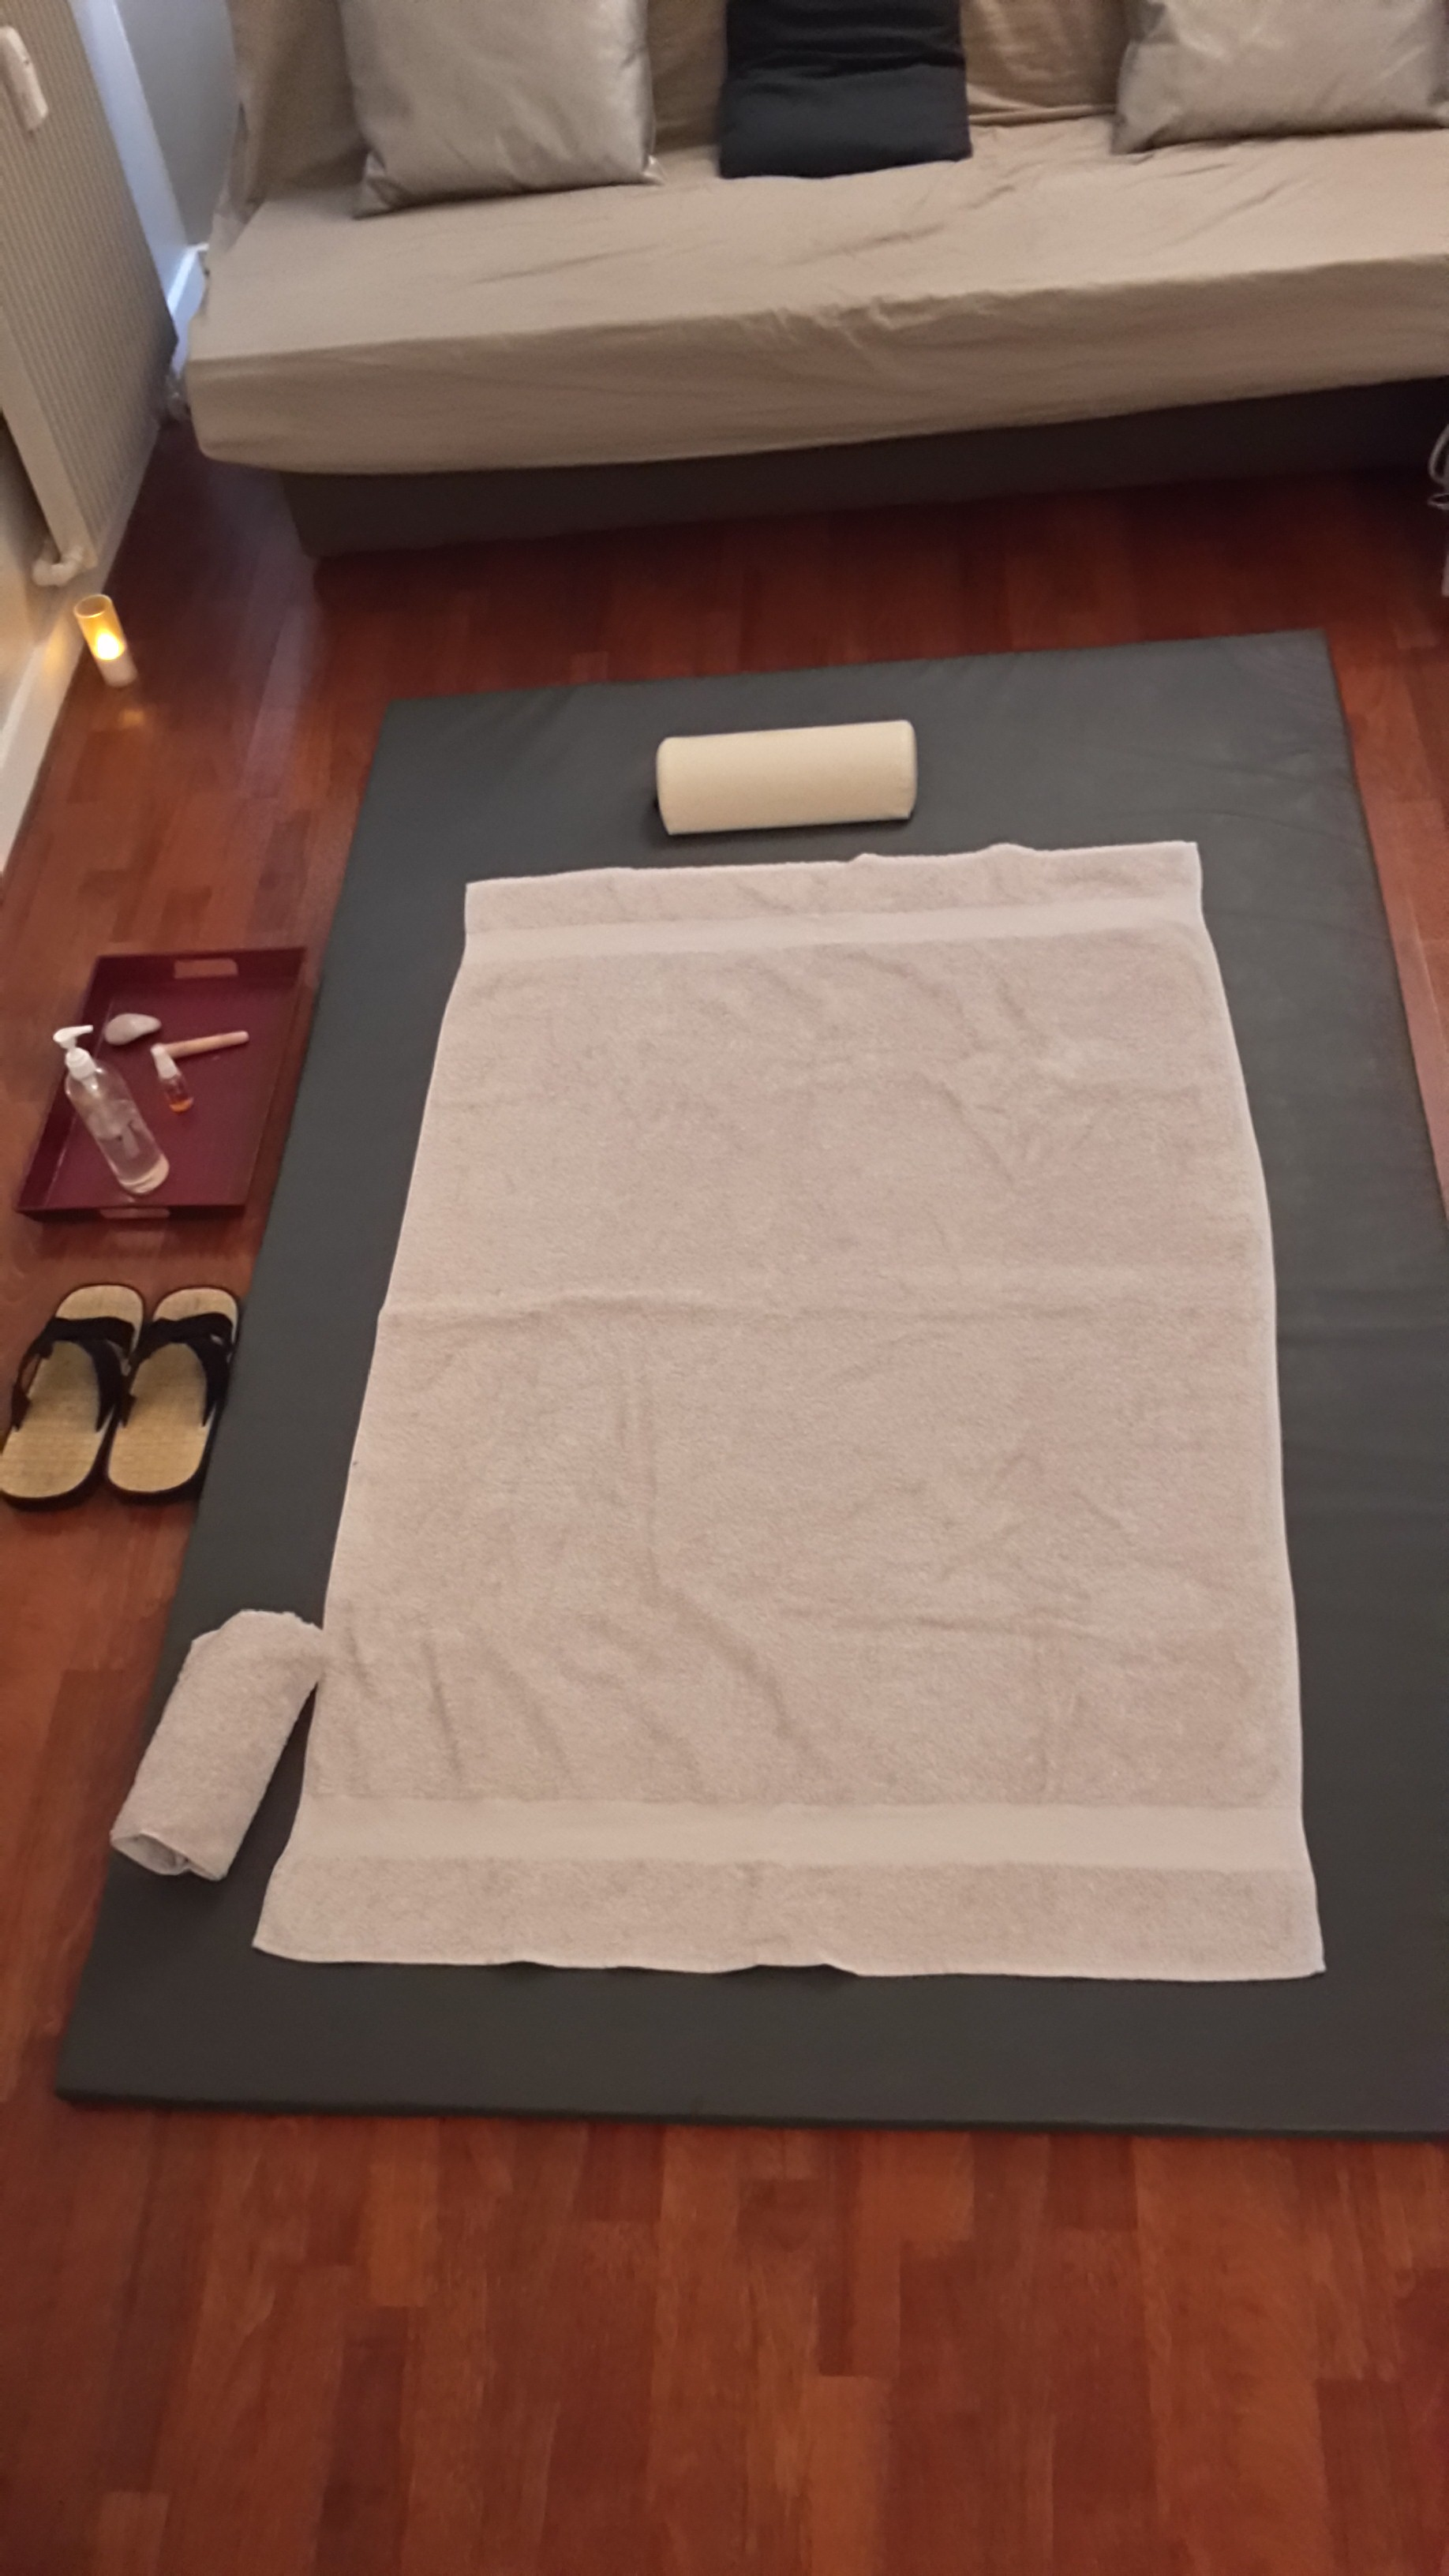 Naknoom Paris tapis massage.jpg